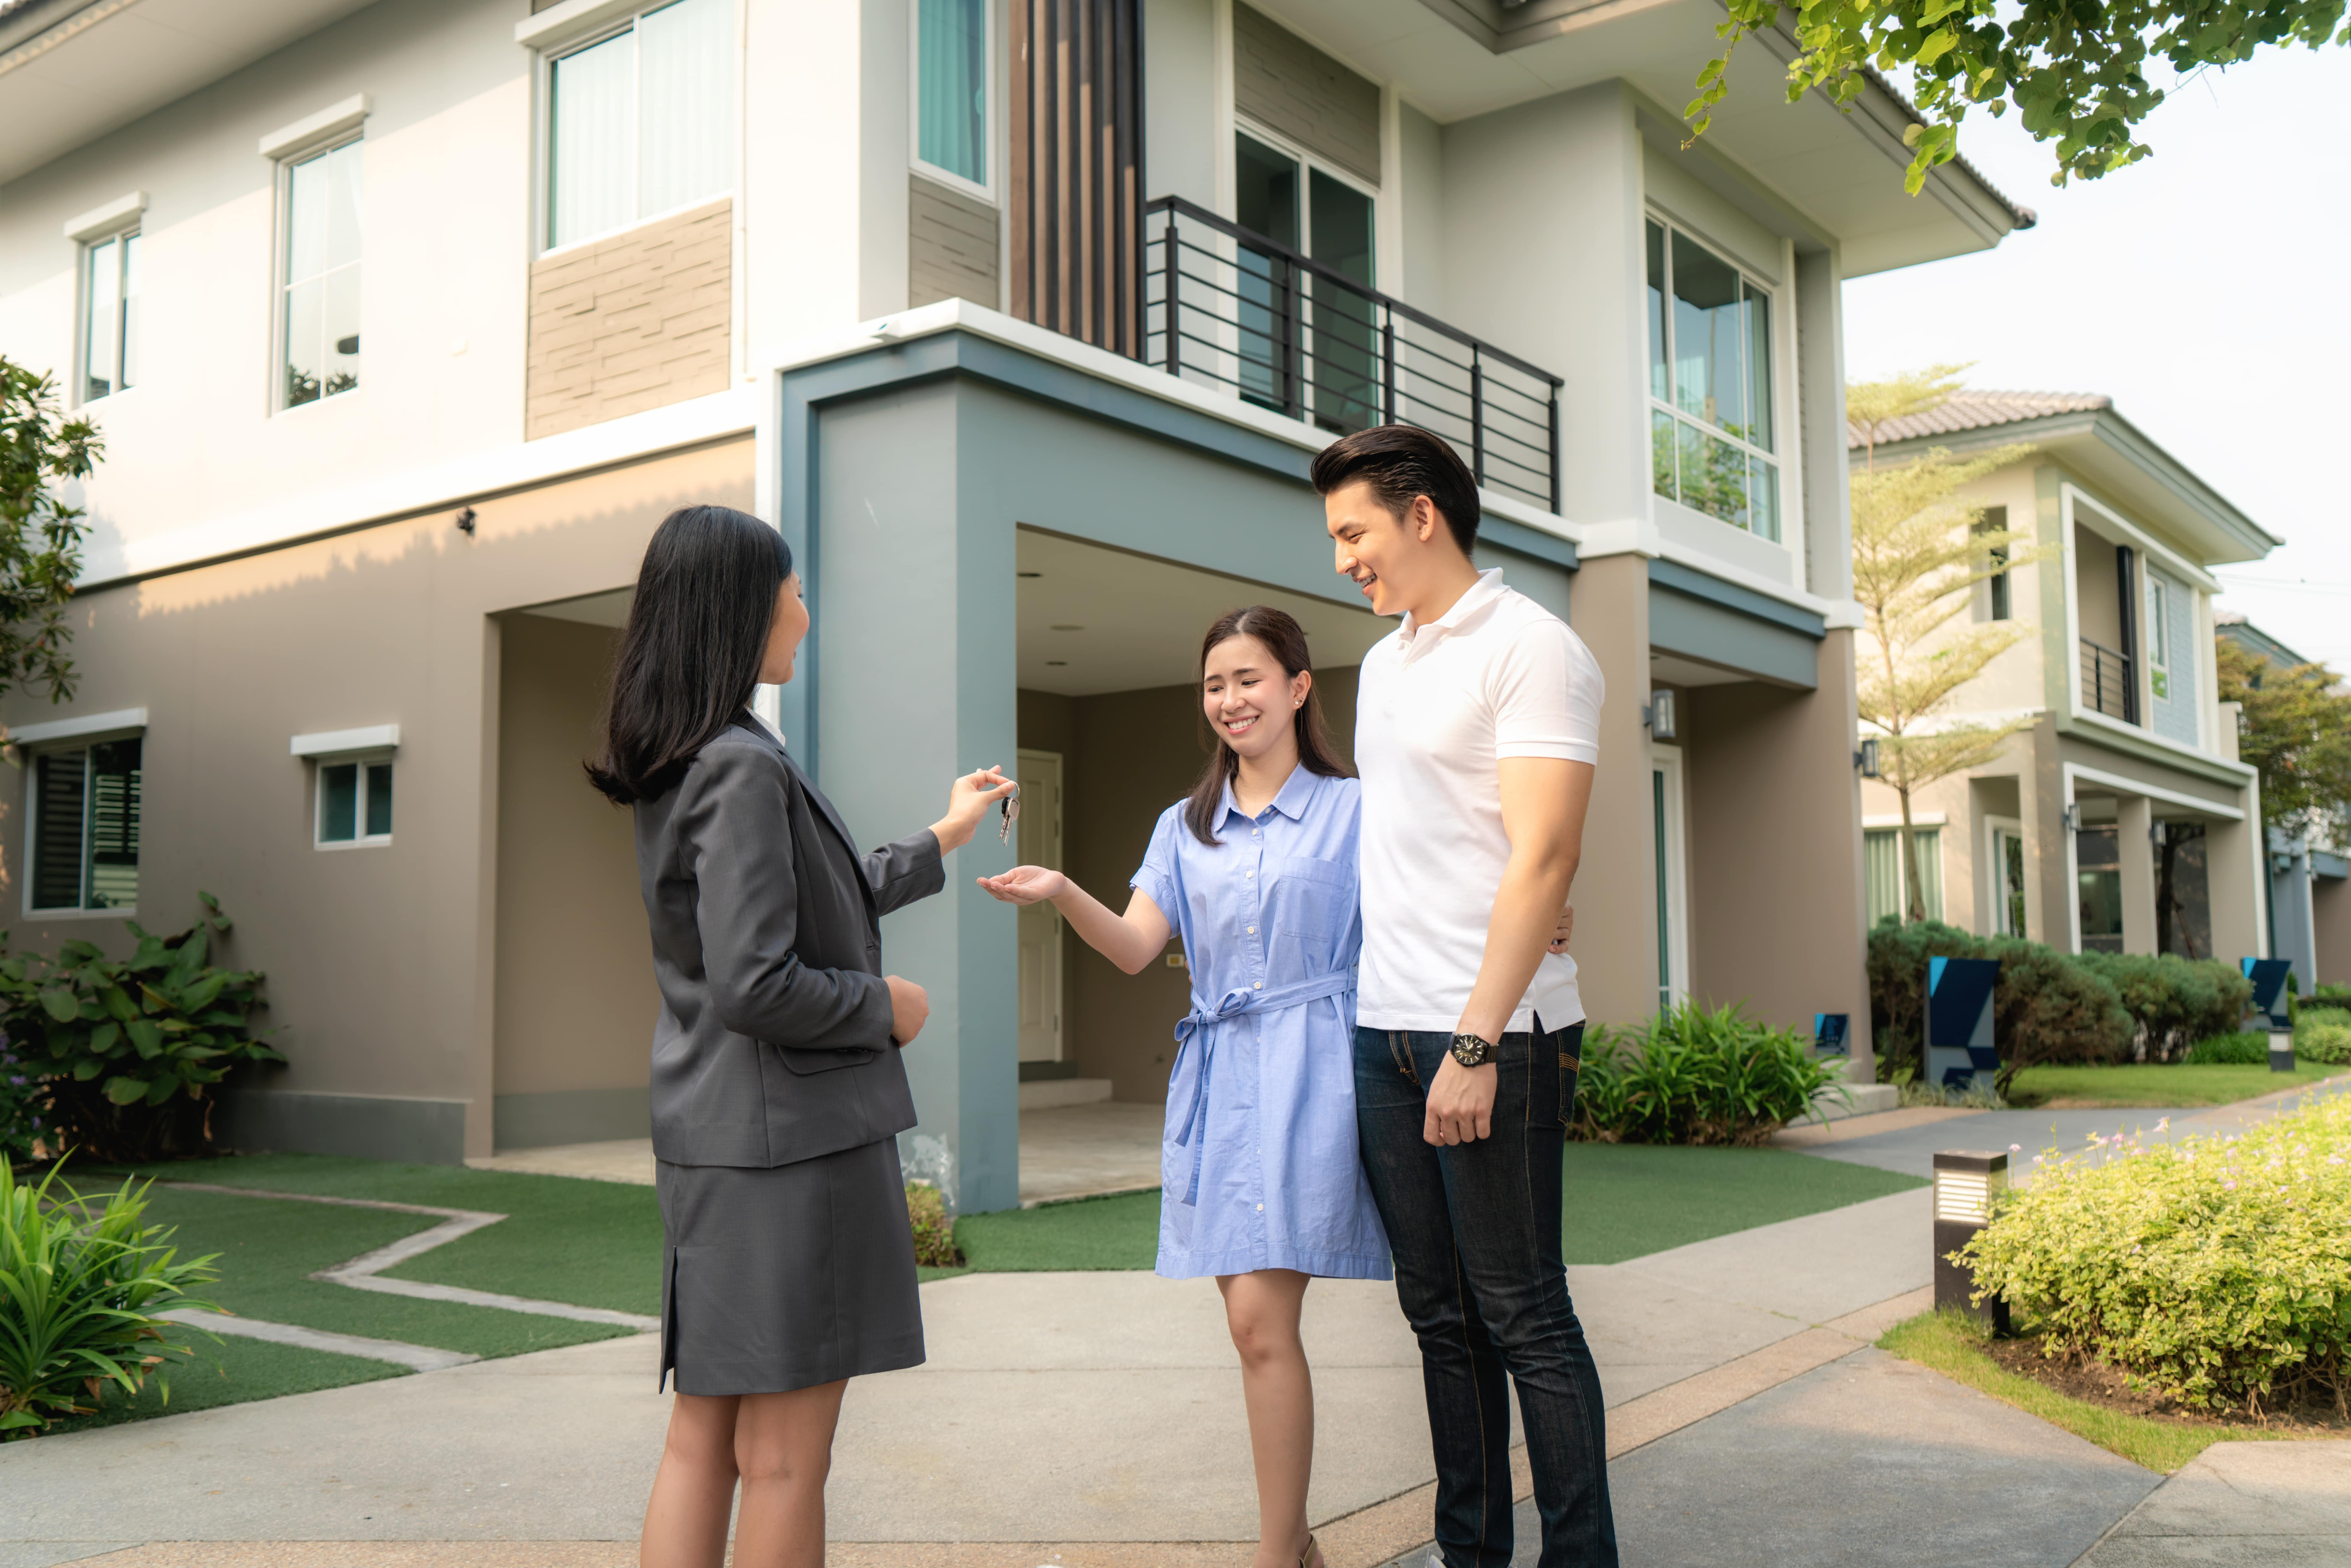 A young couple getting the keys to their new home with the help of their real estate agent.